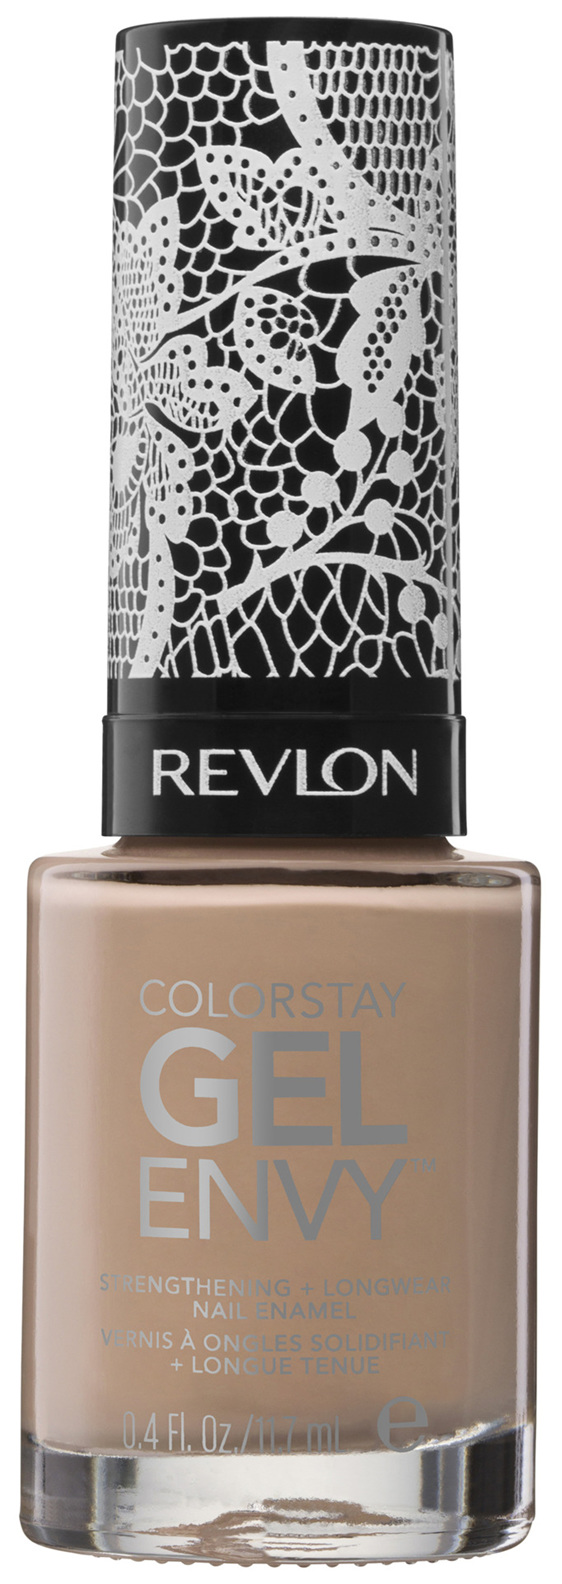 Revlon ColorStay Gel Envy™ Nail Enamel Bare It Girl